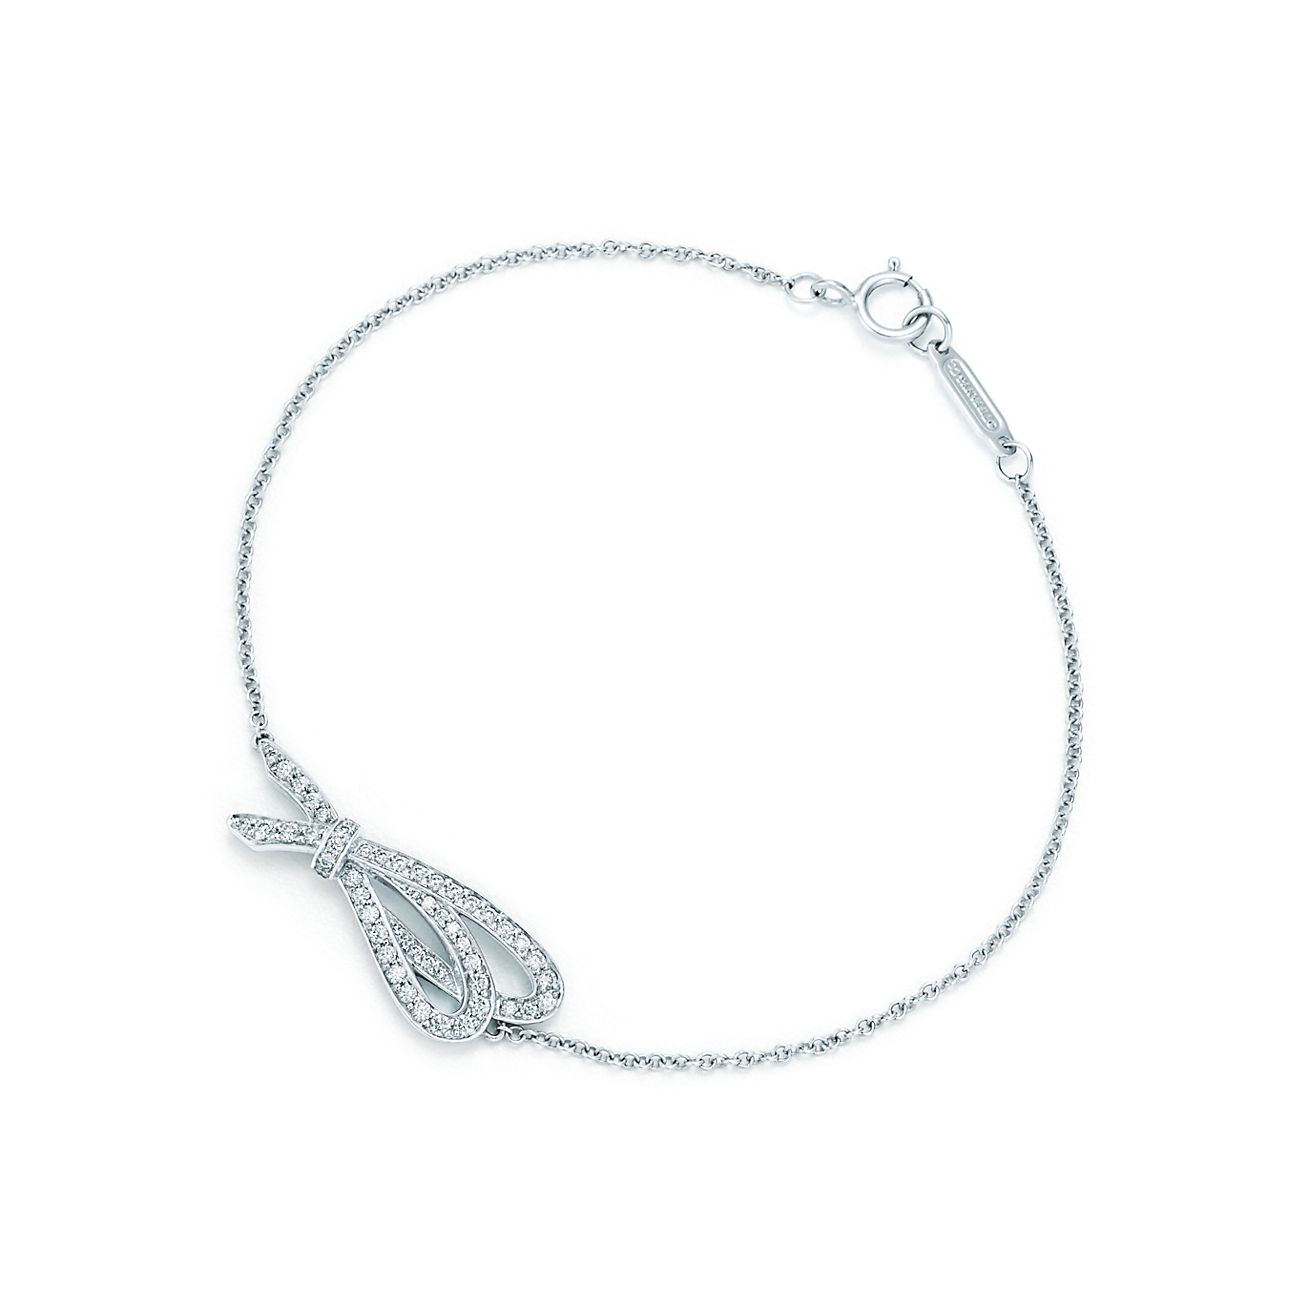 Tiffany Bow bracelet in platinum with diamonds, medium - Size 6.5 IN Tiffany & Co.